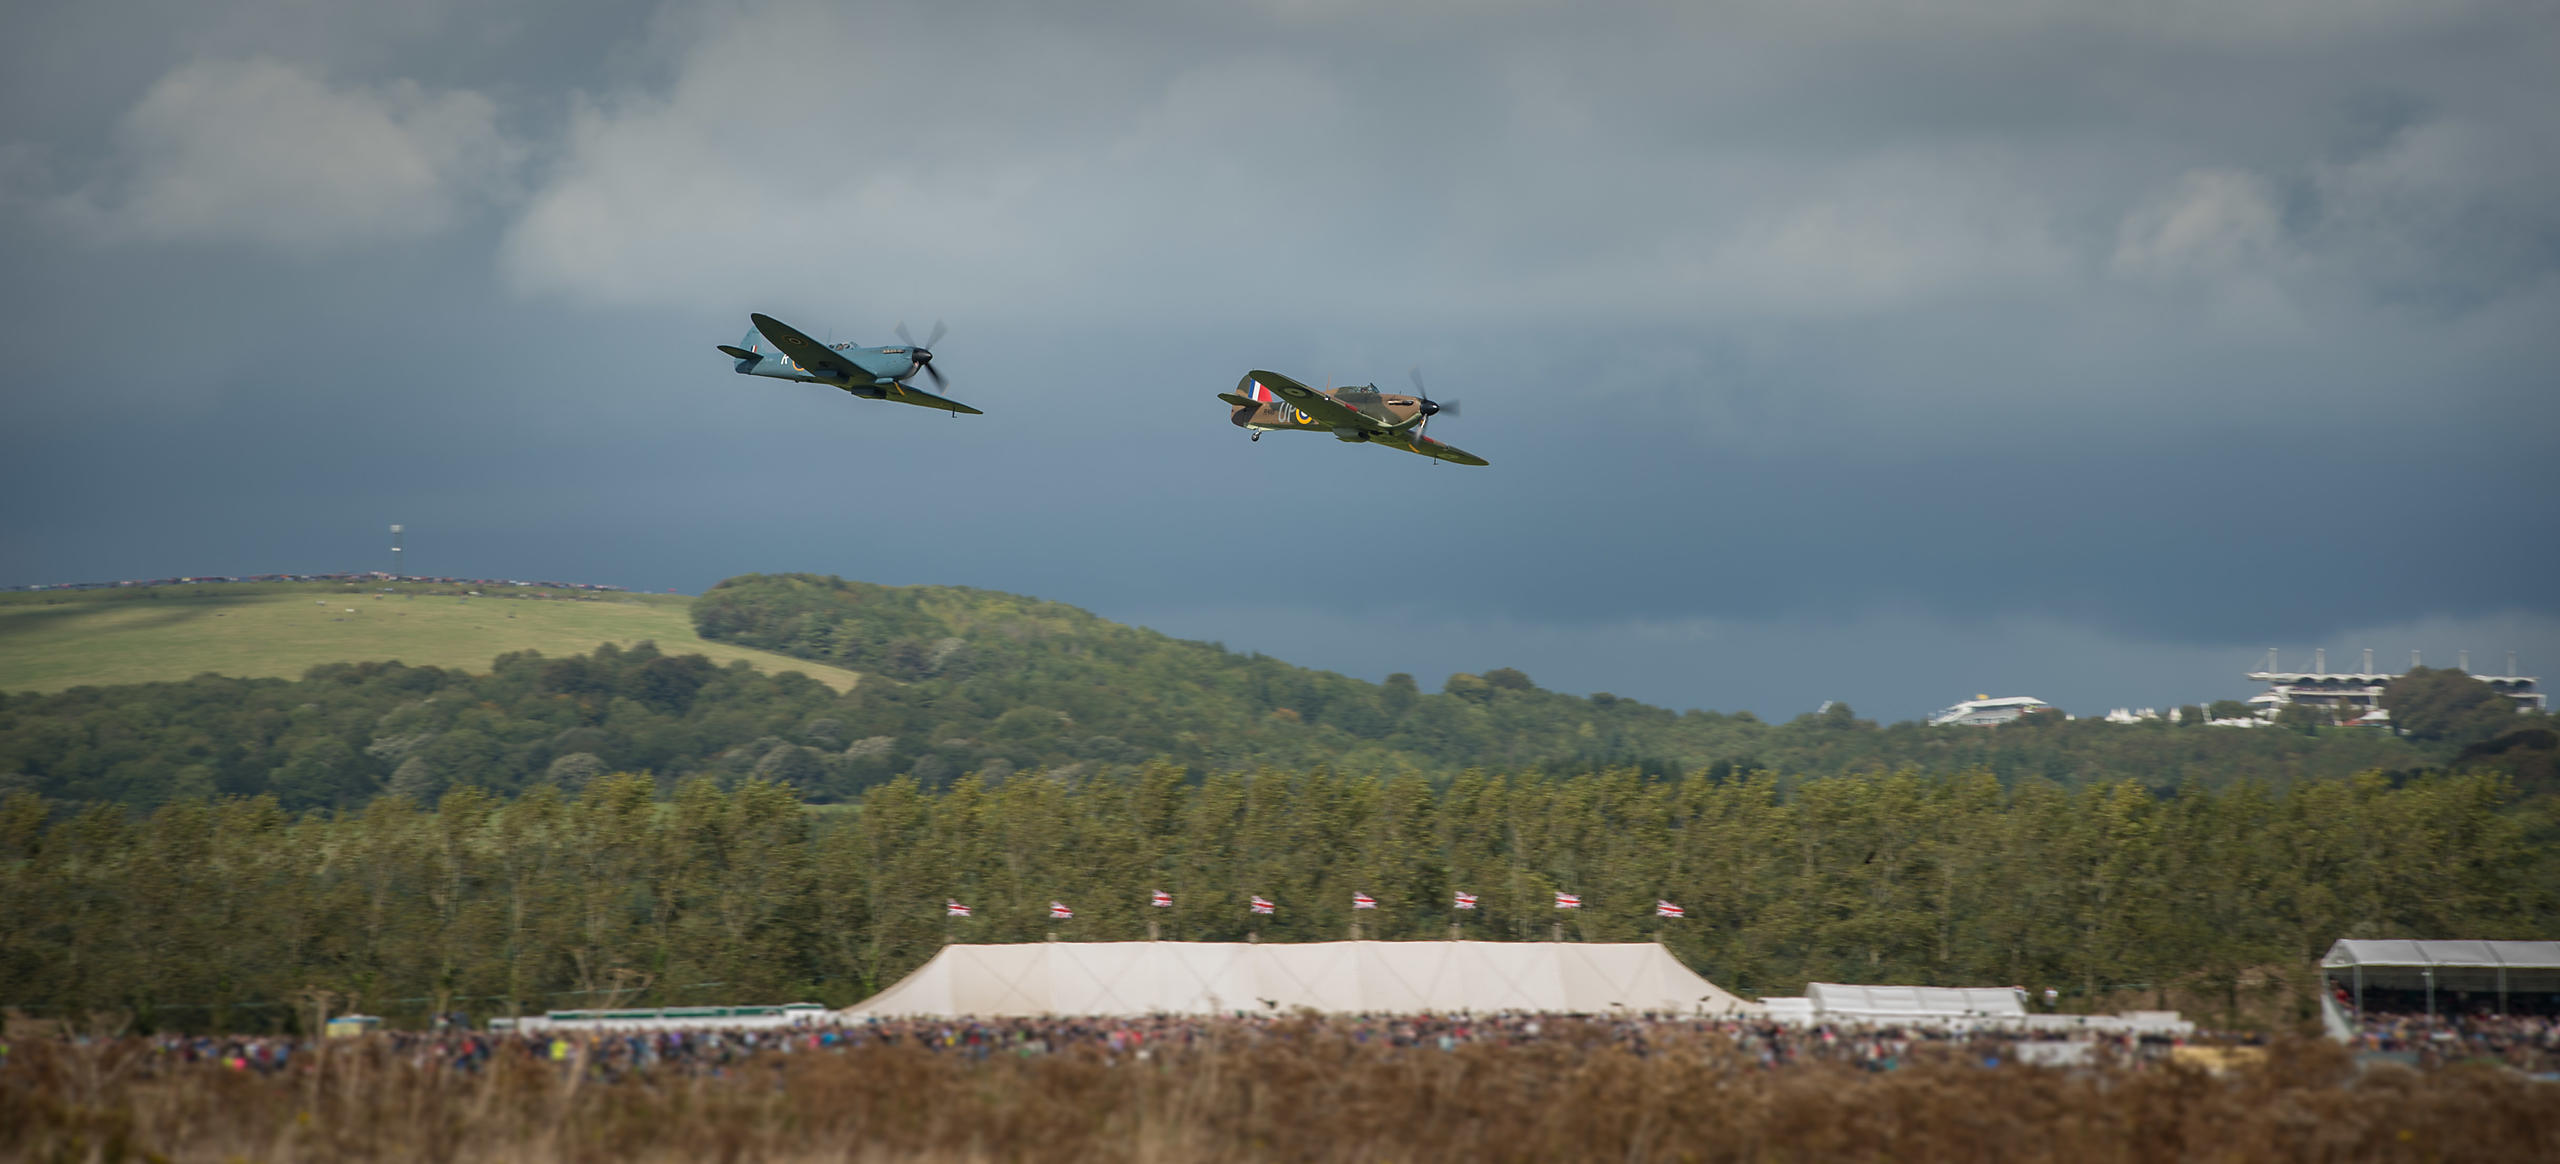 Spitfires Flying over Goodwood